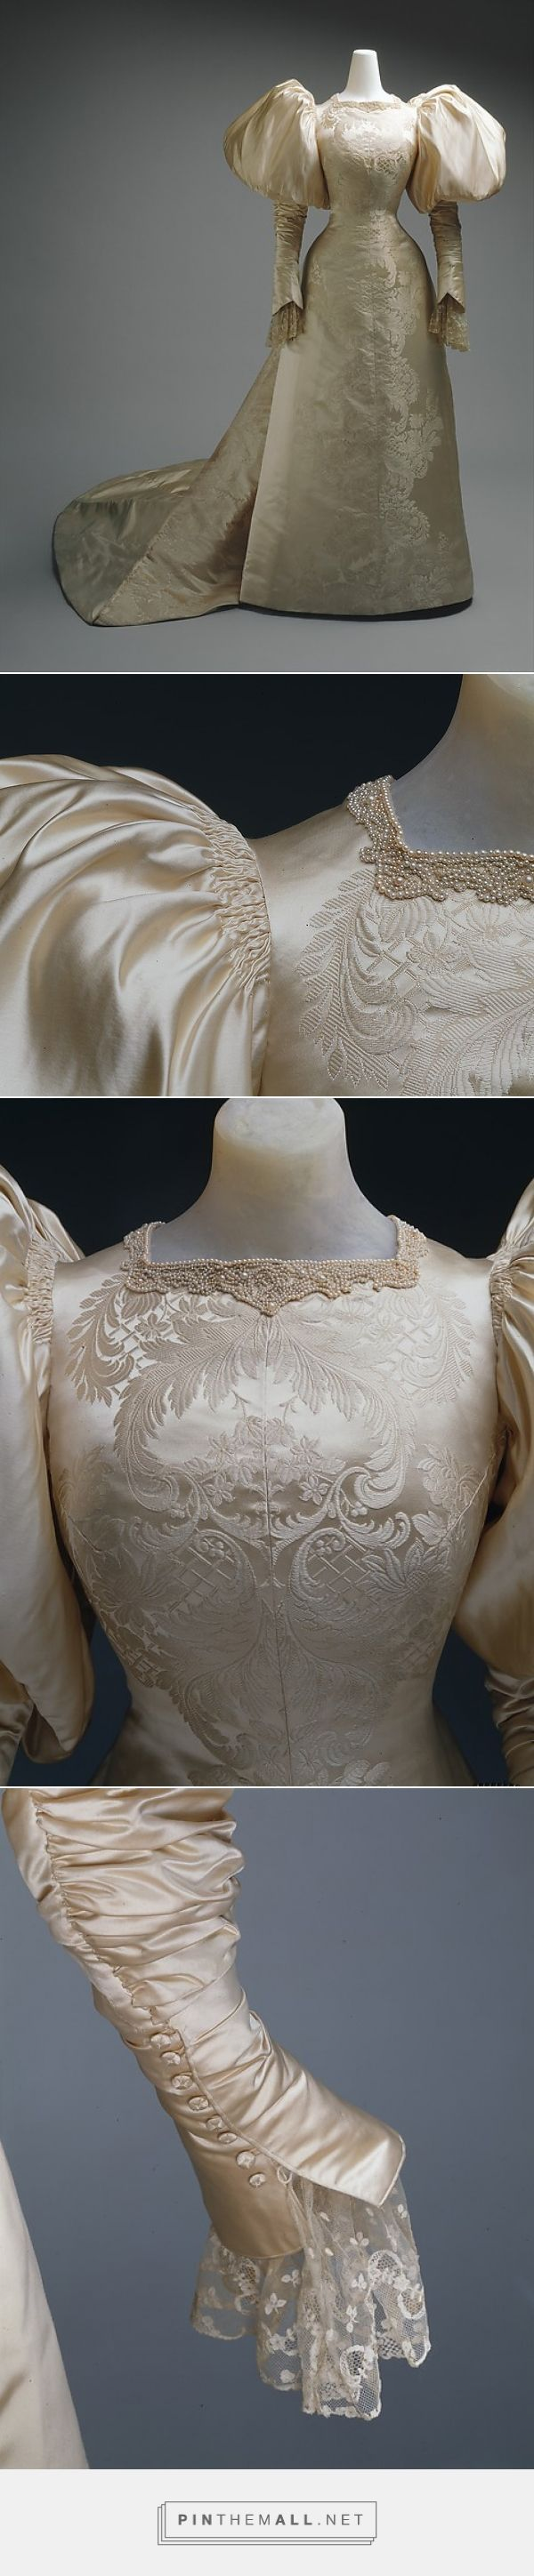 Wedding dress by House of Worth 1896 French | The Metropolitan Museum of Art